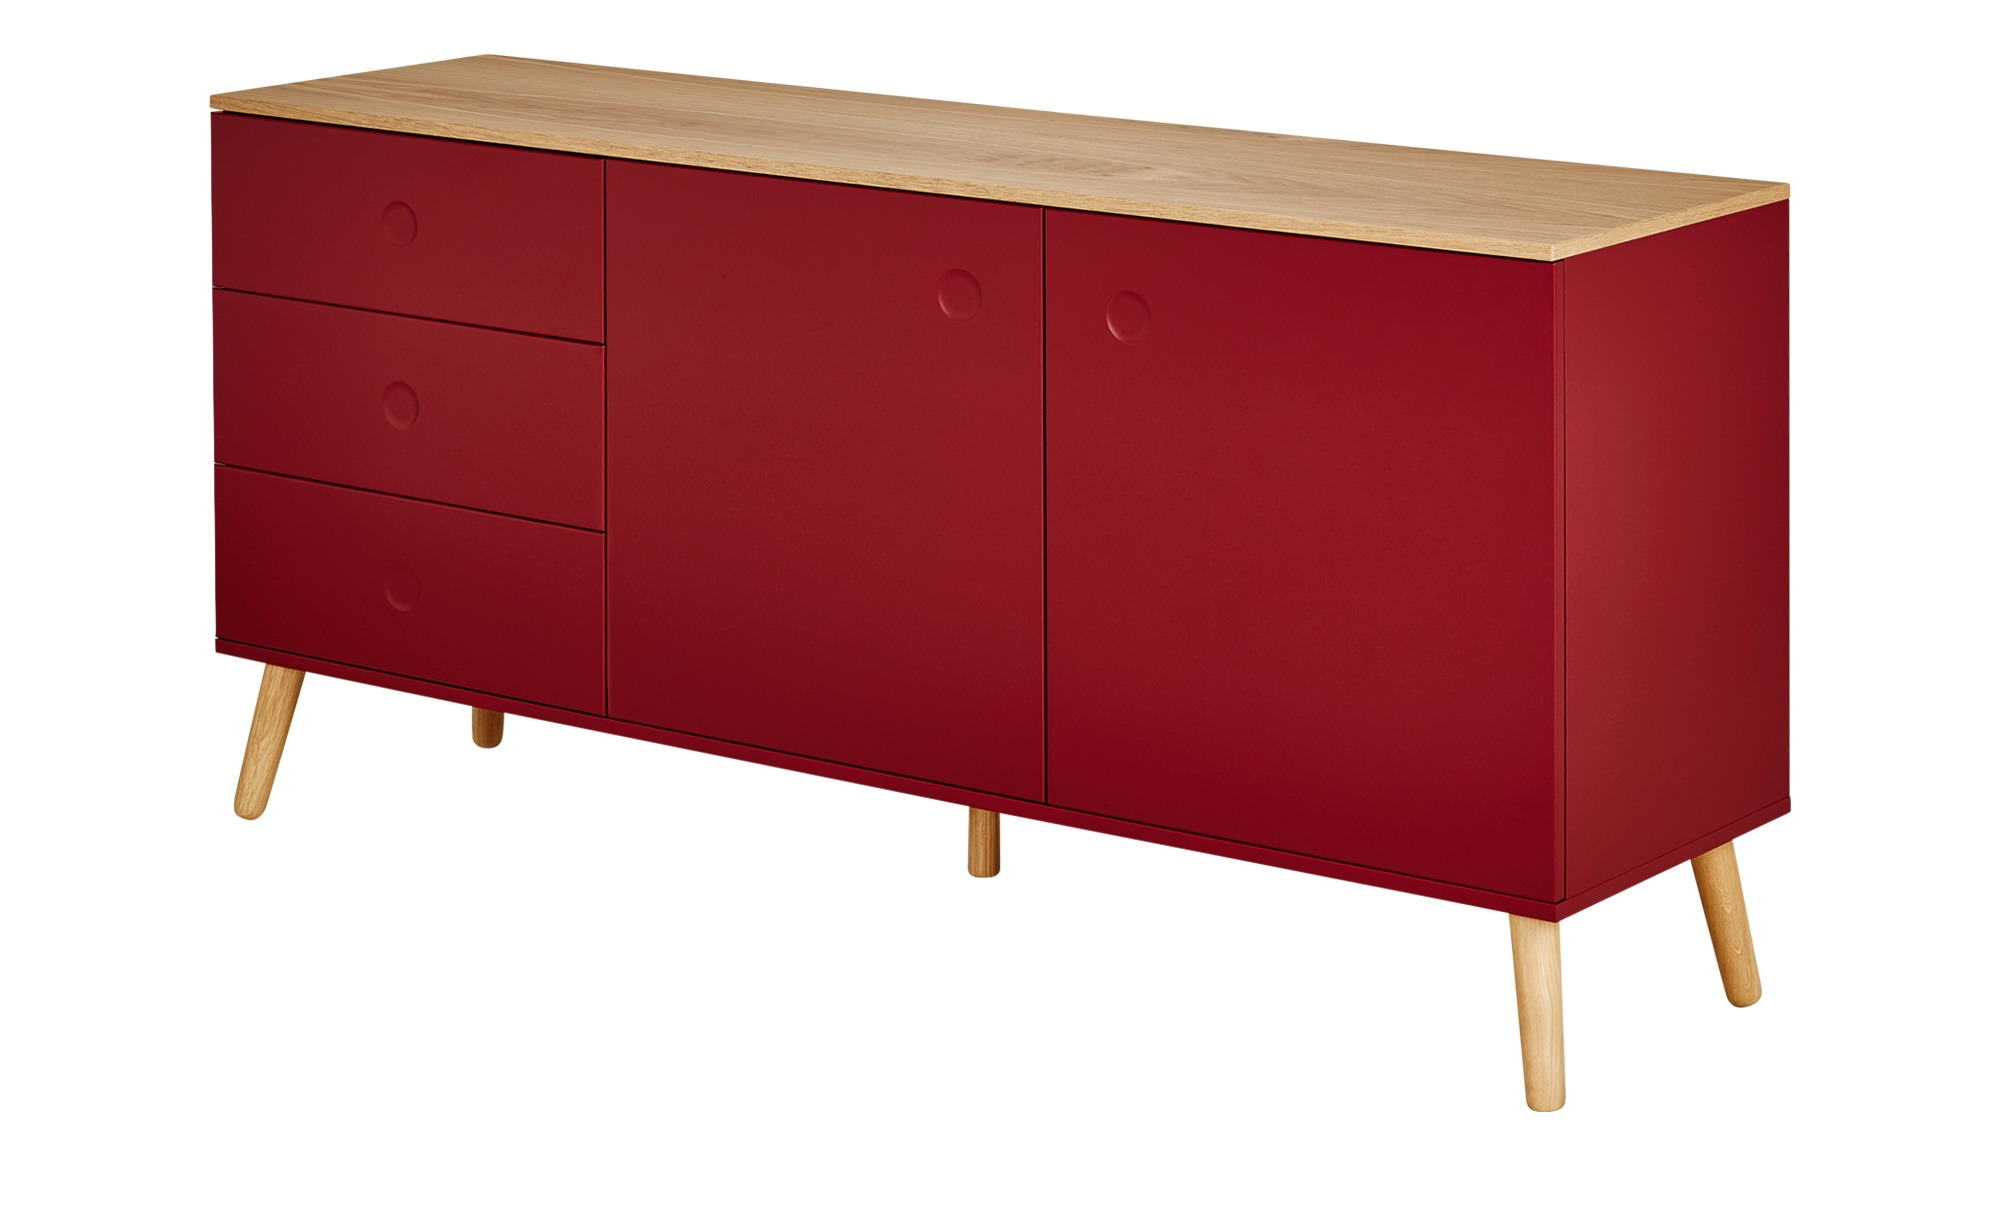 roomers sideboard scan breite 162 cm h he 79 cm rot. Black Bedroom Furniture Sets. Home Design Ideas